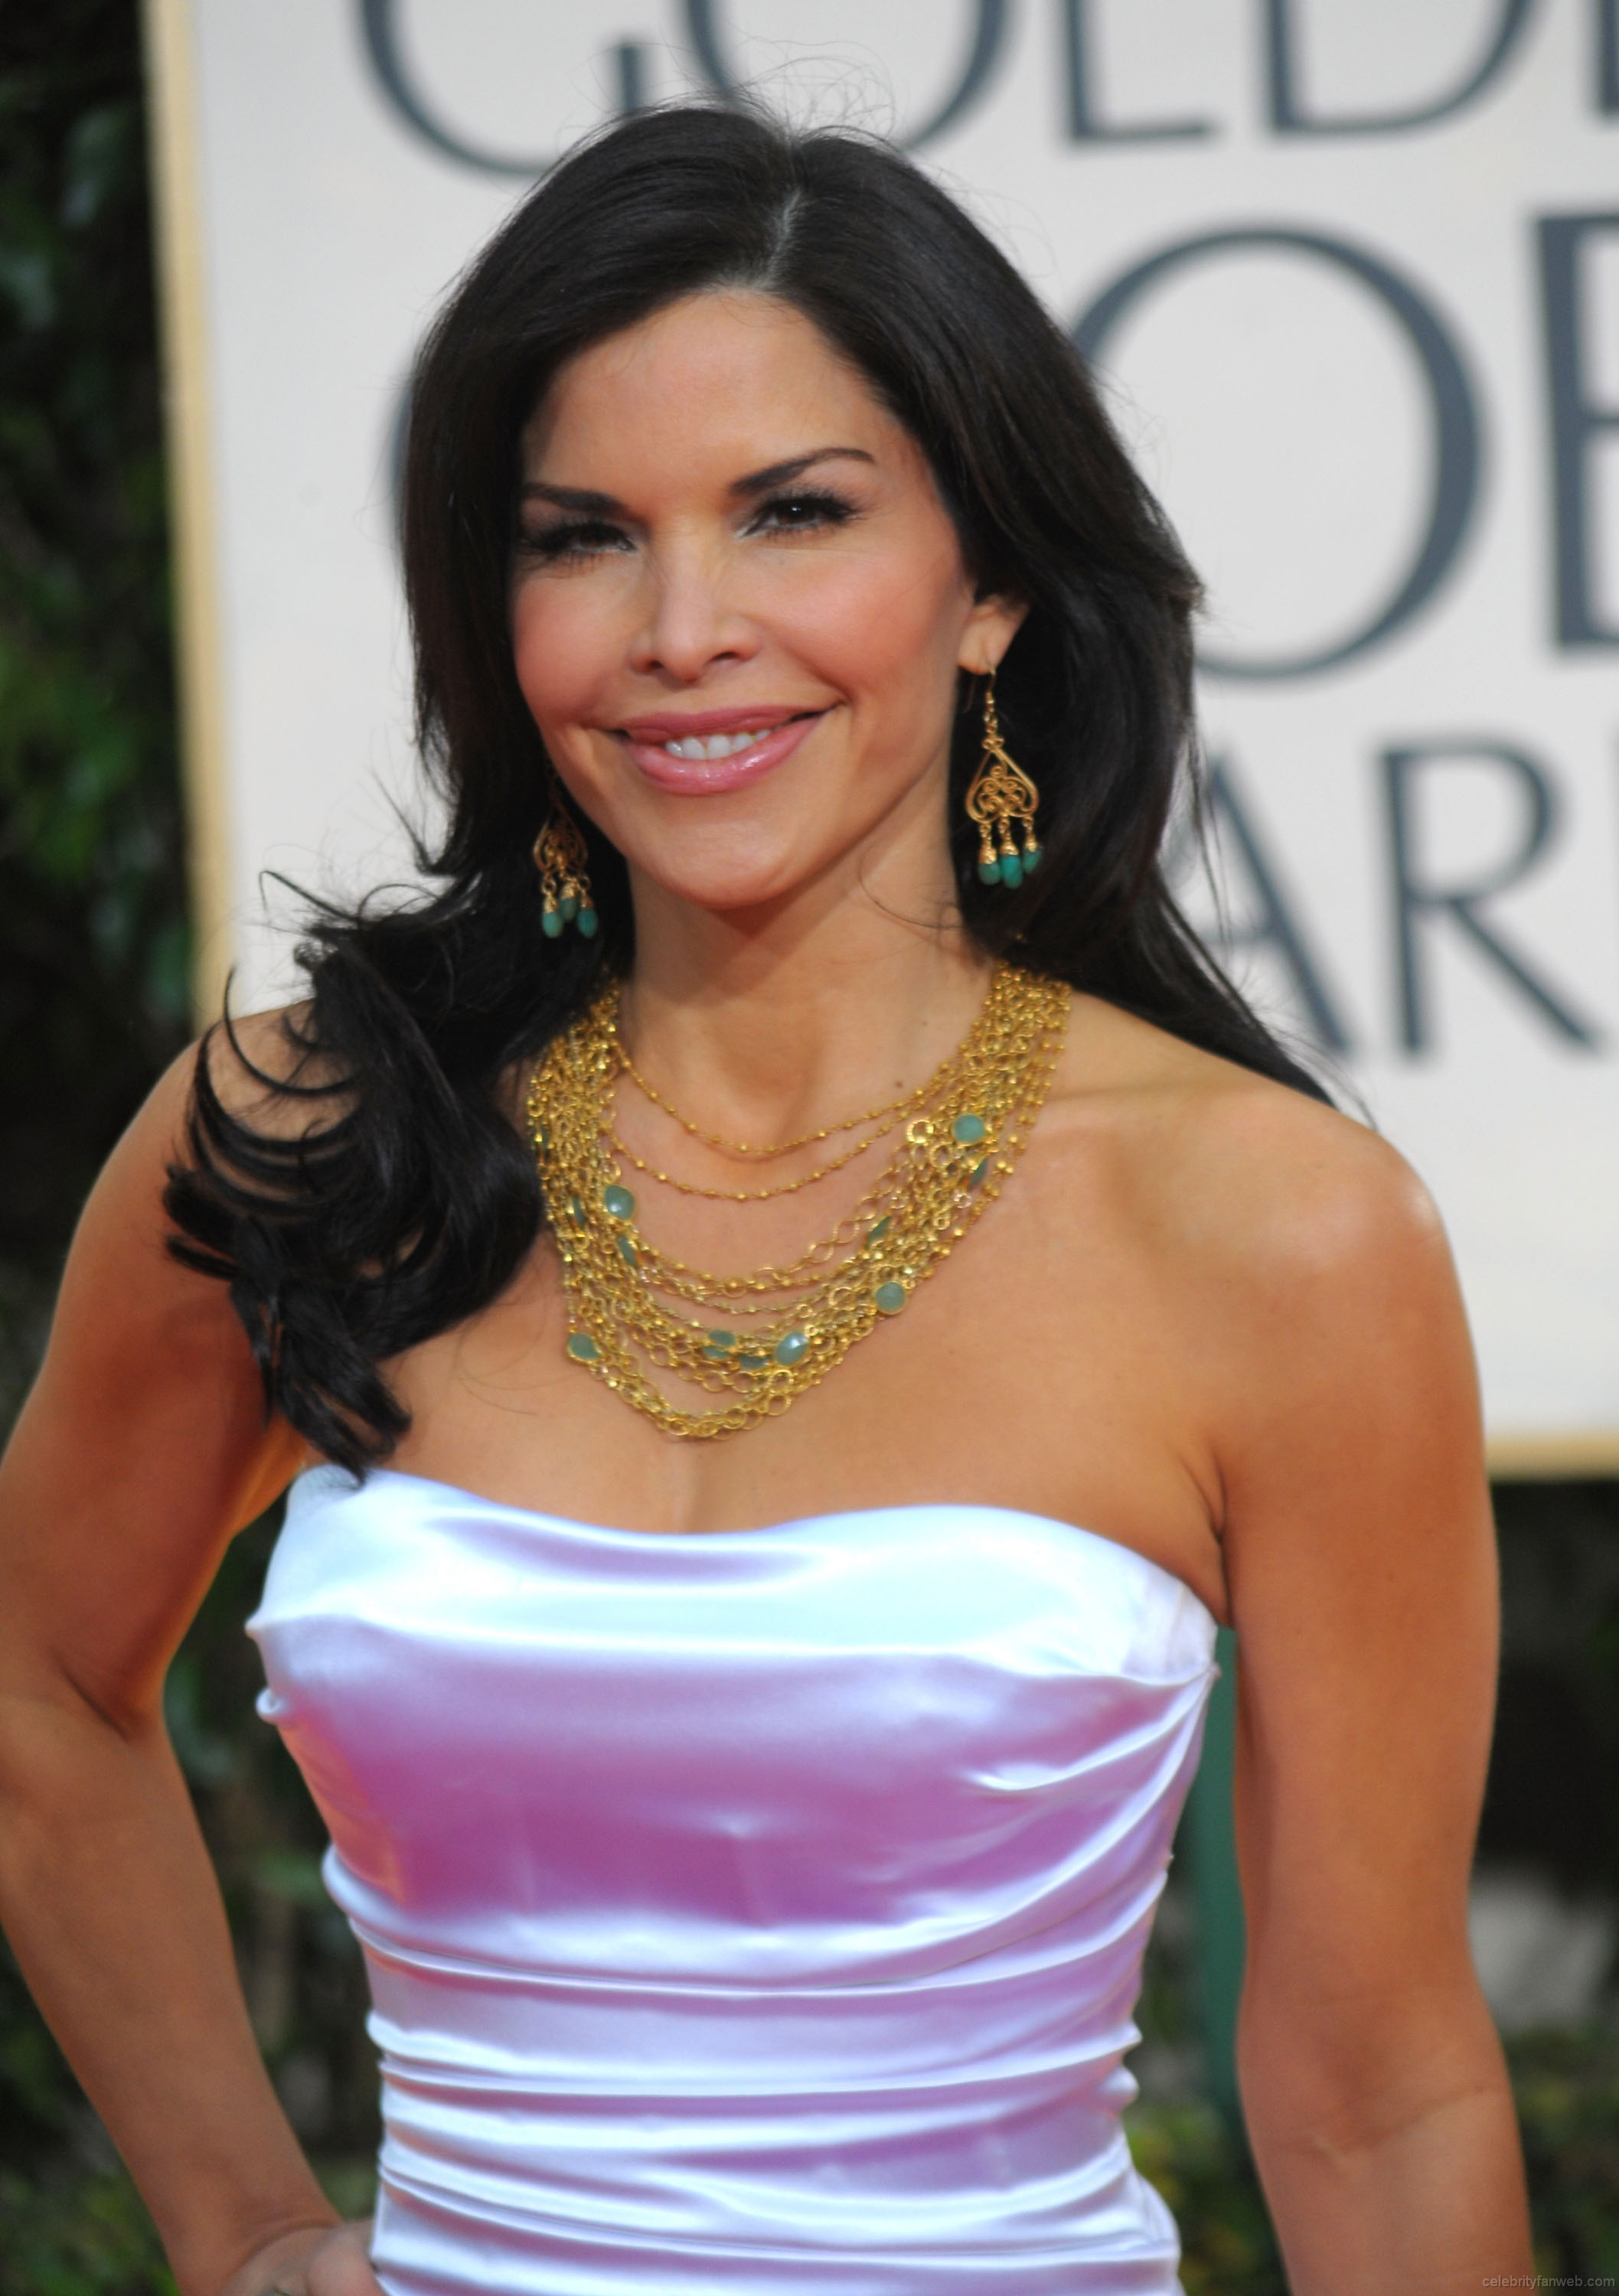 lauren sanchez - photo #37